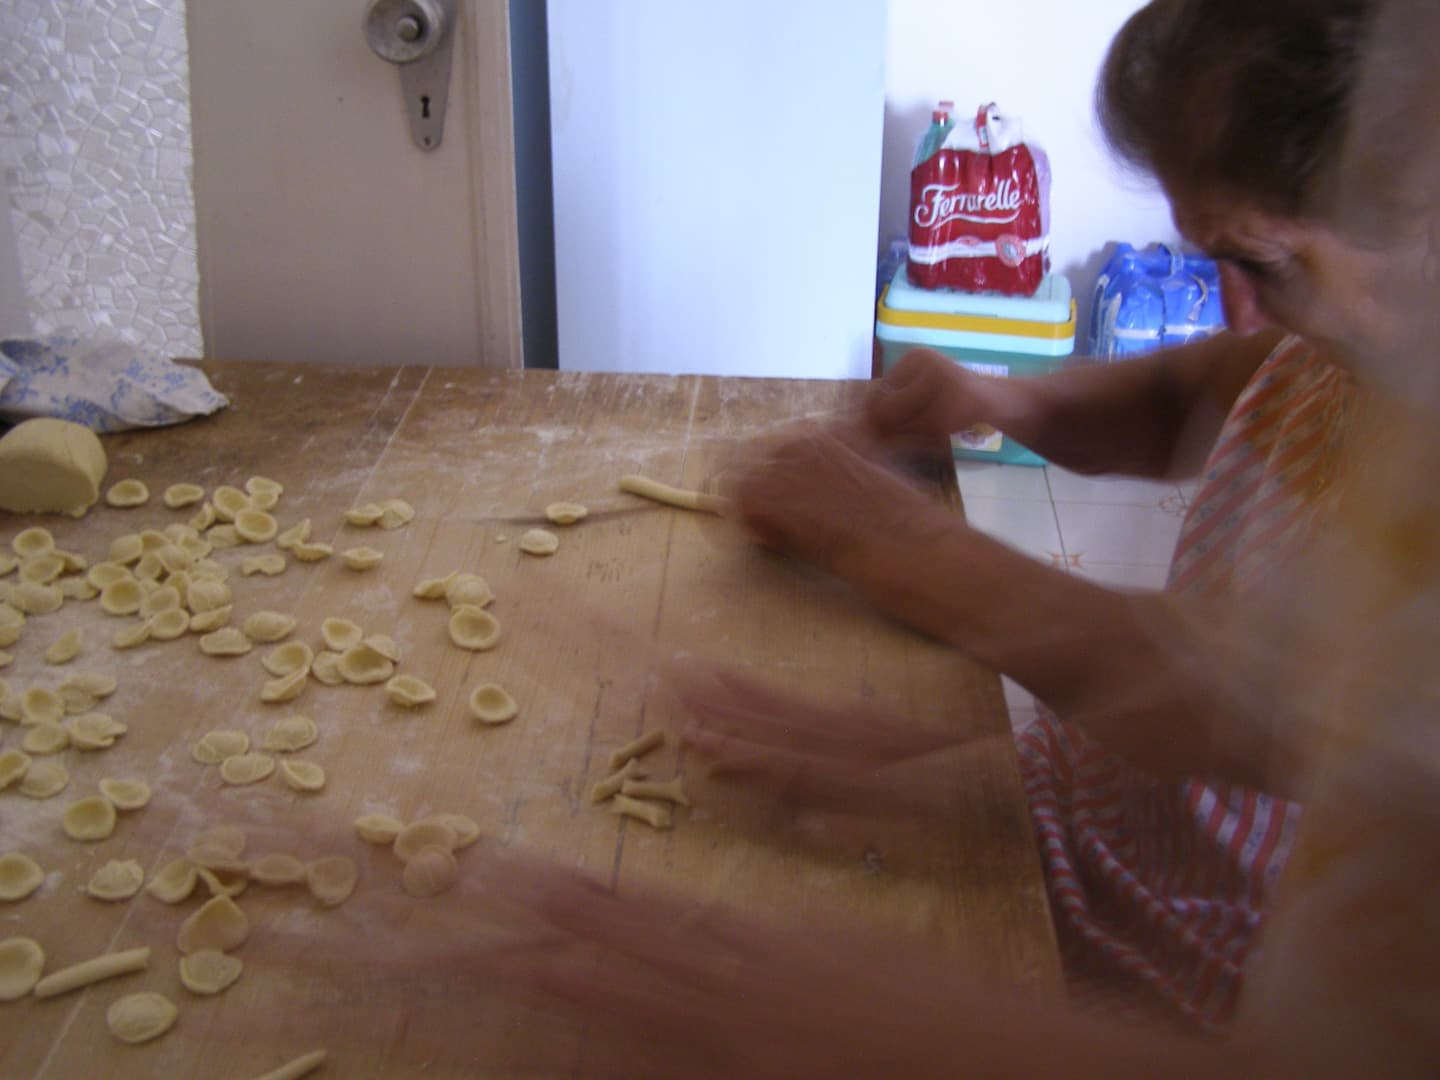 Old ladies are making hand-made pasta.